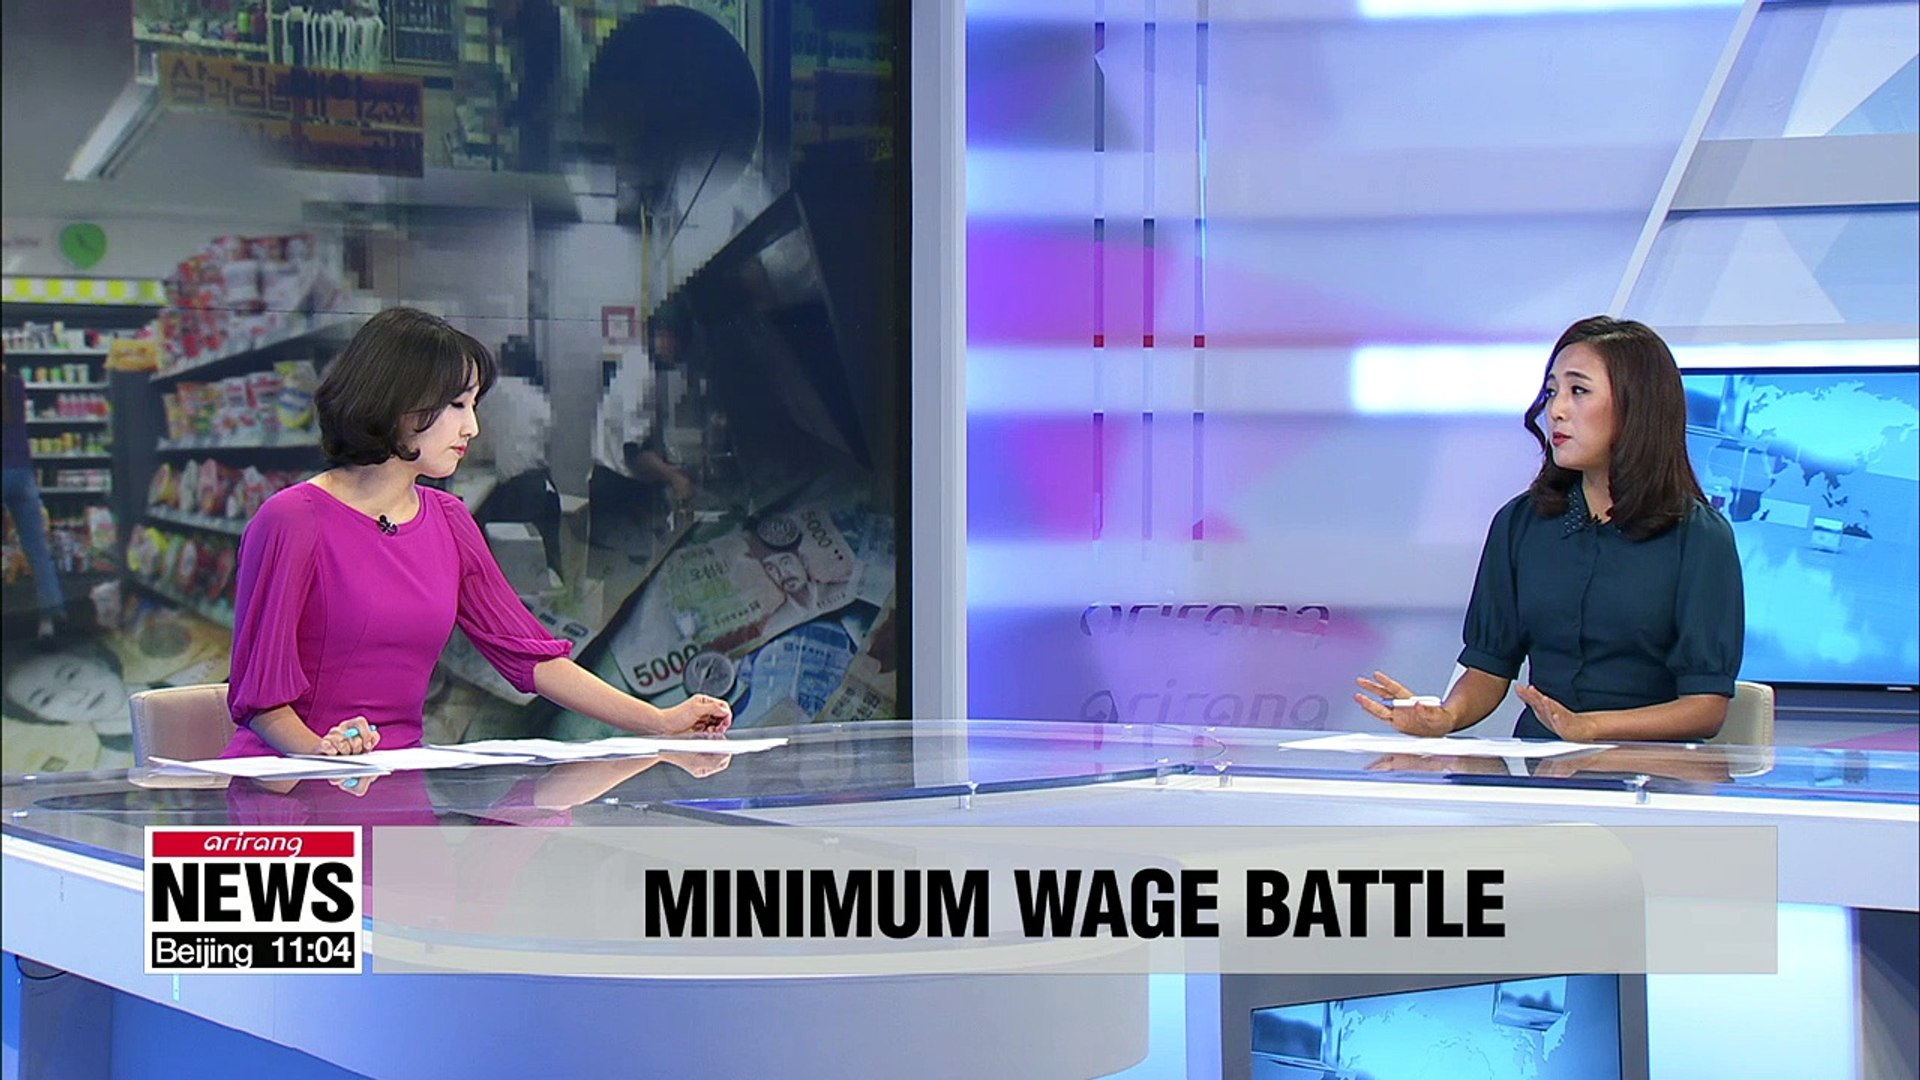 Part-time workers, small business owners concerned about rapid minimum wage hike pt1